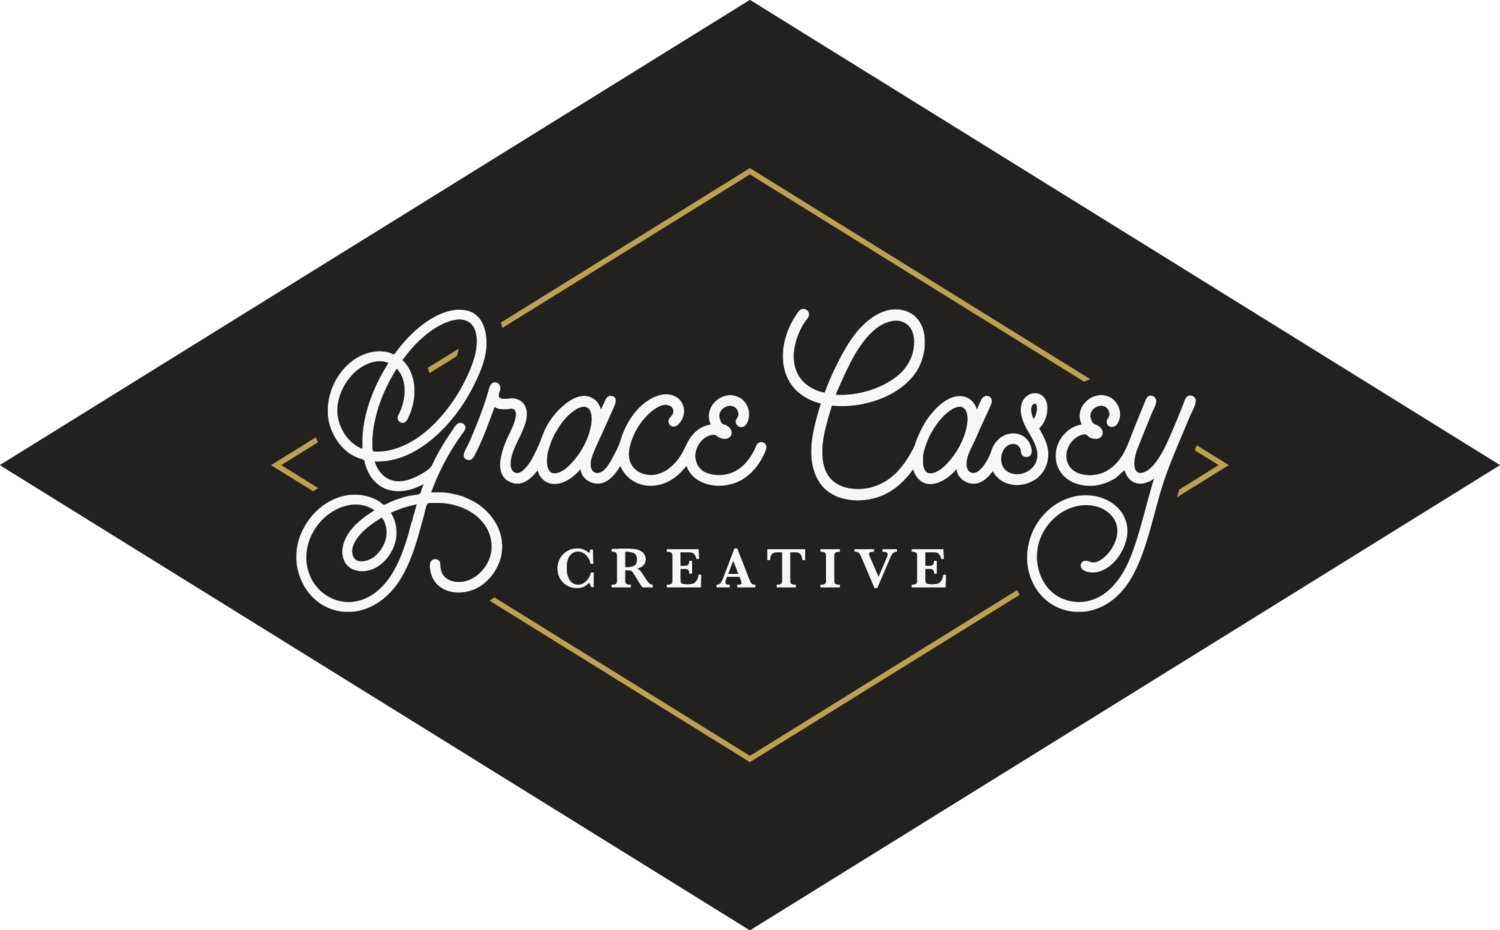 Grace Casey Creative